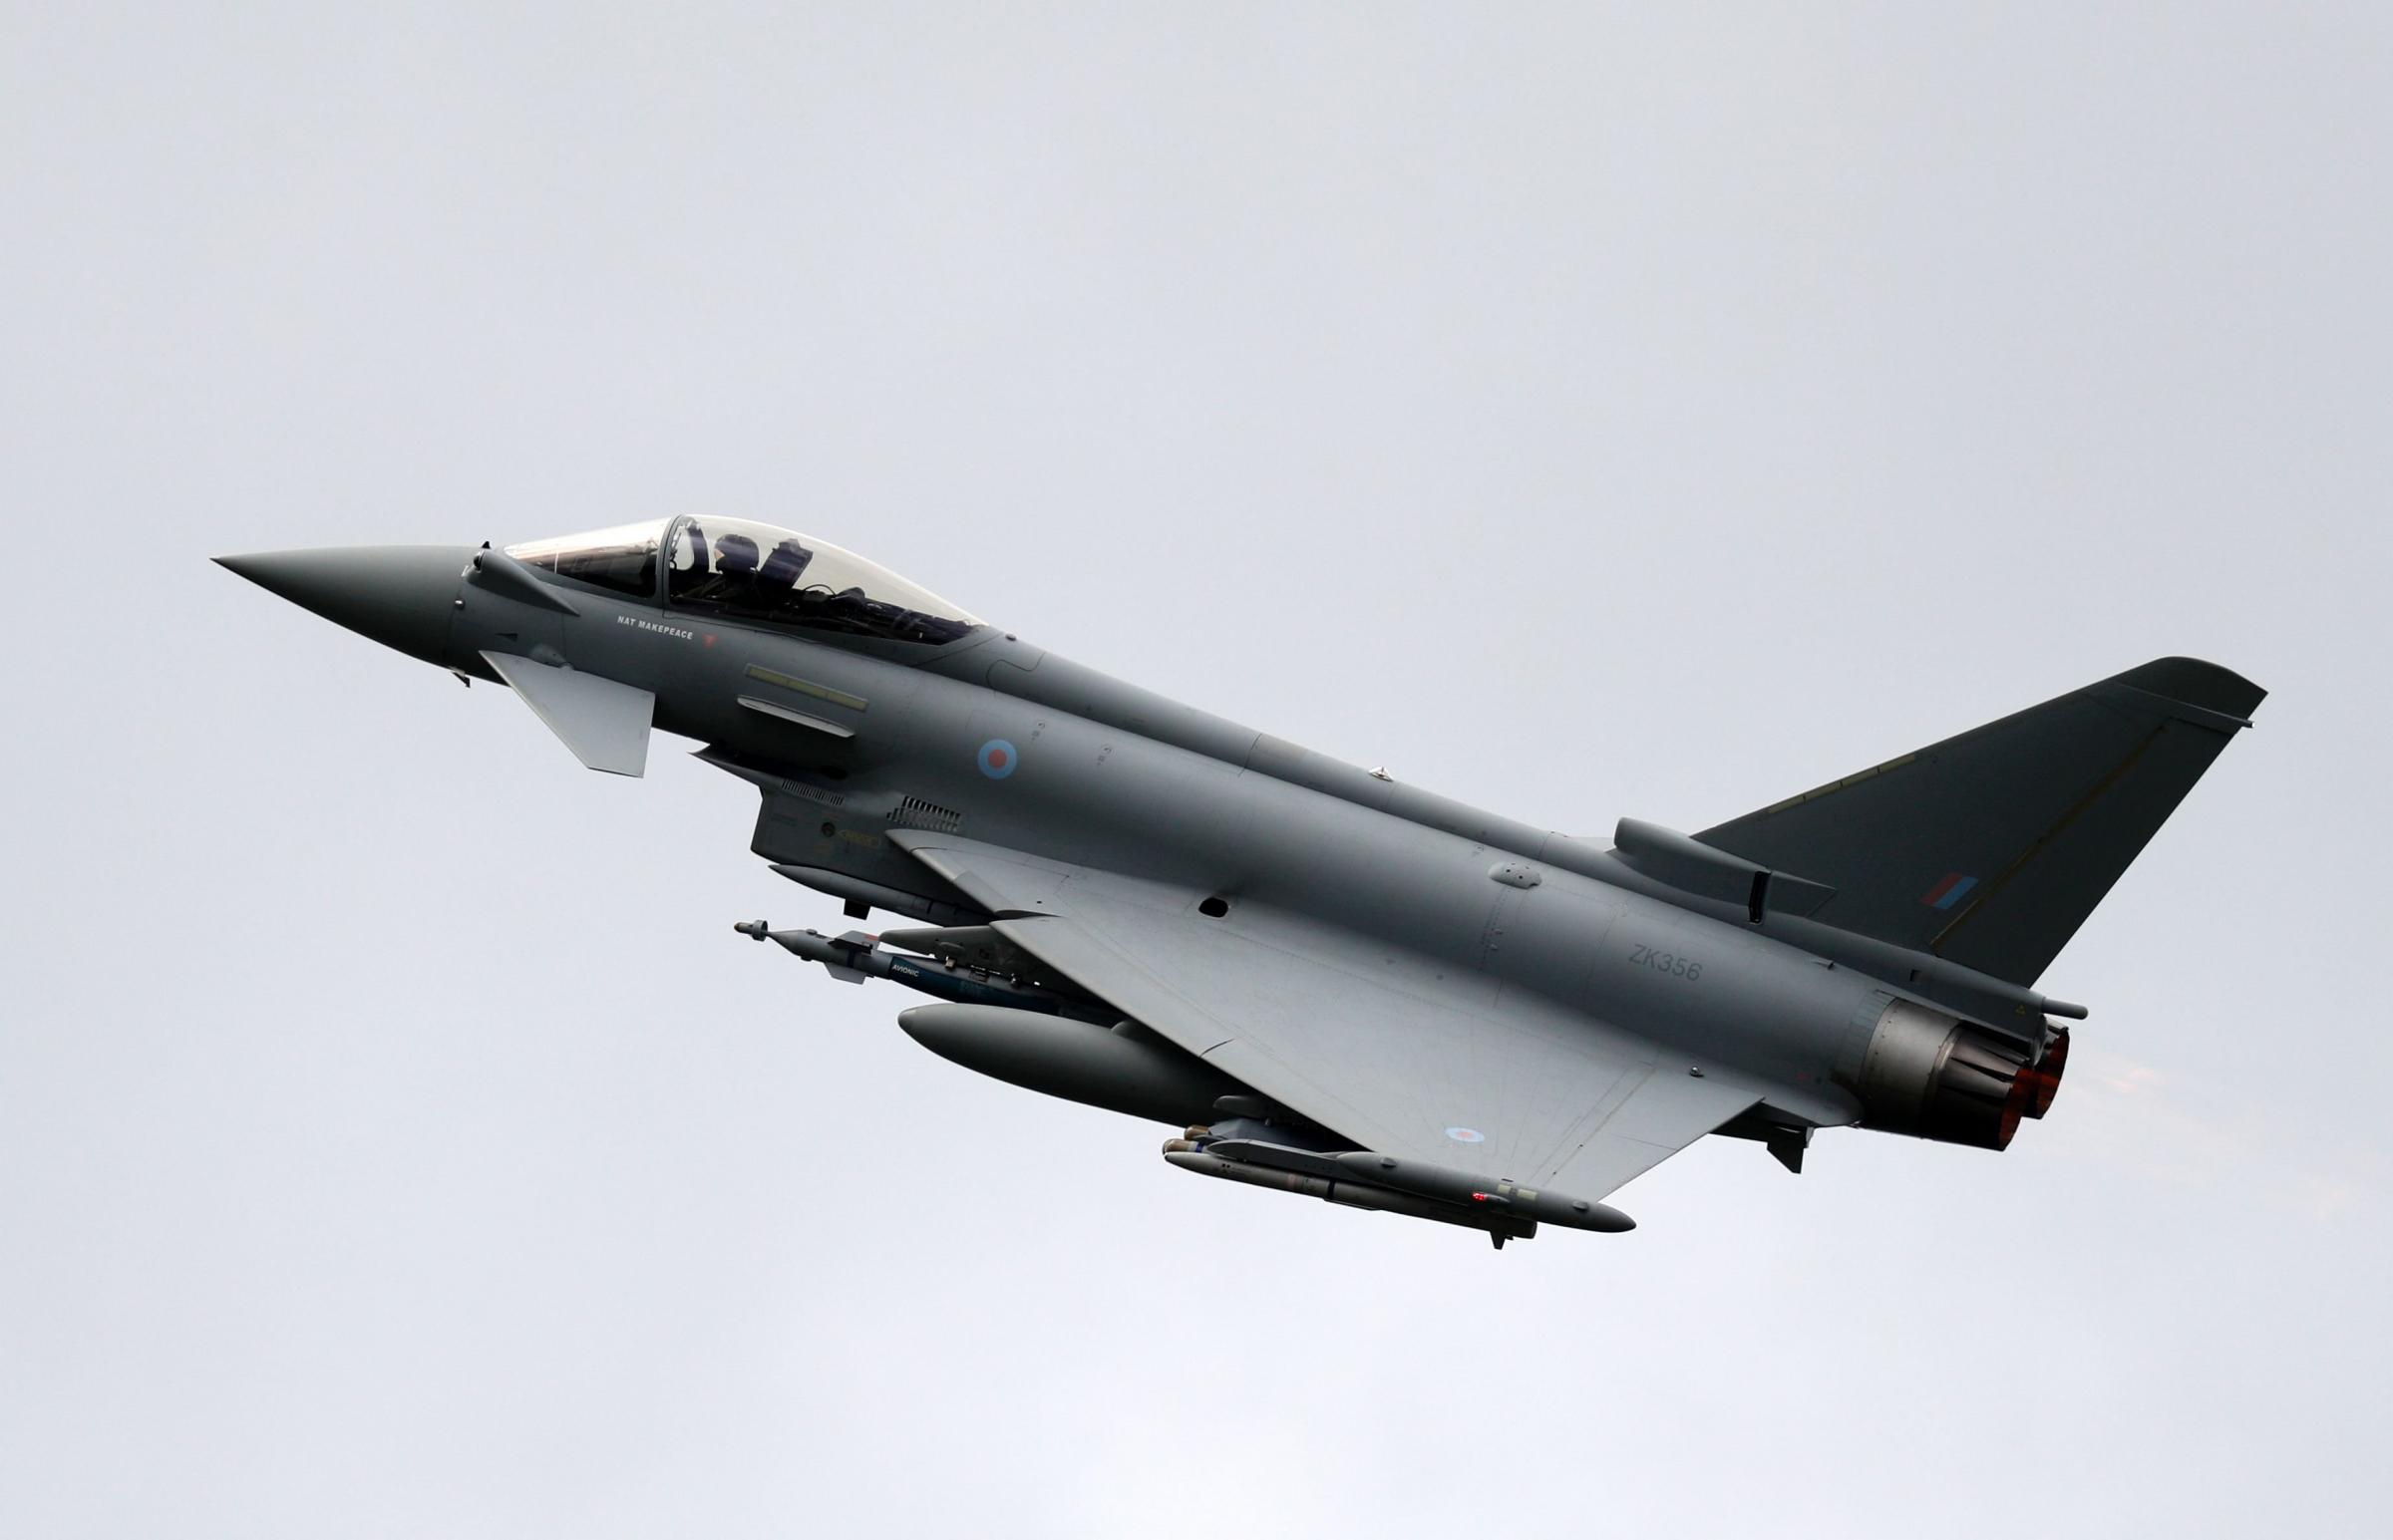 A Eurofighter typhoon – pictured – belonging to Spain was involved in the incident